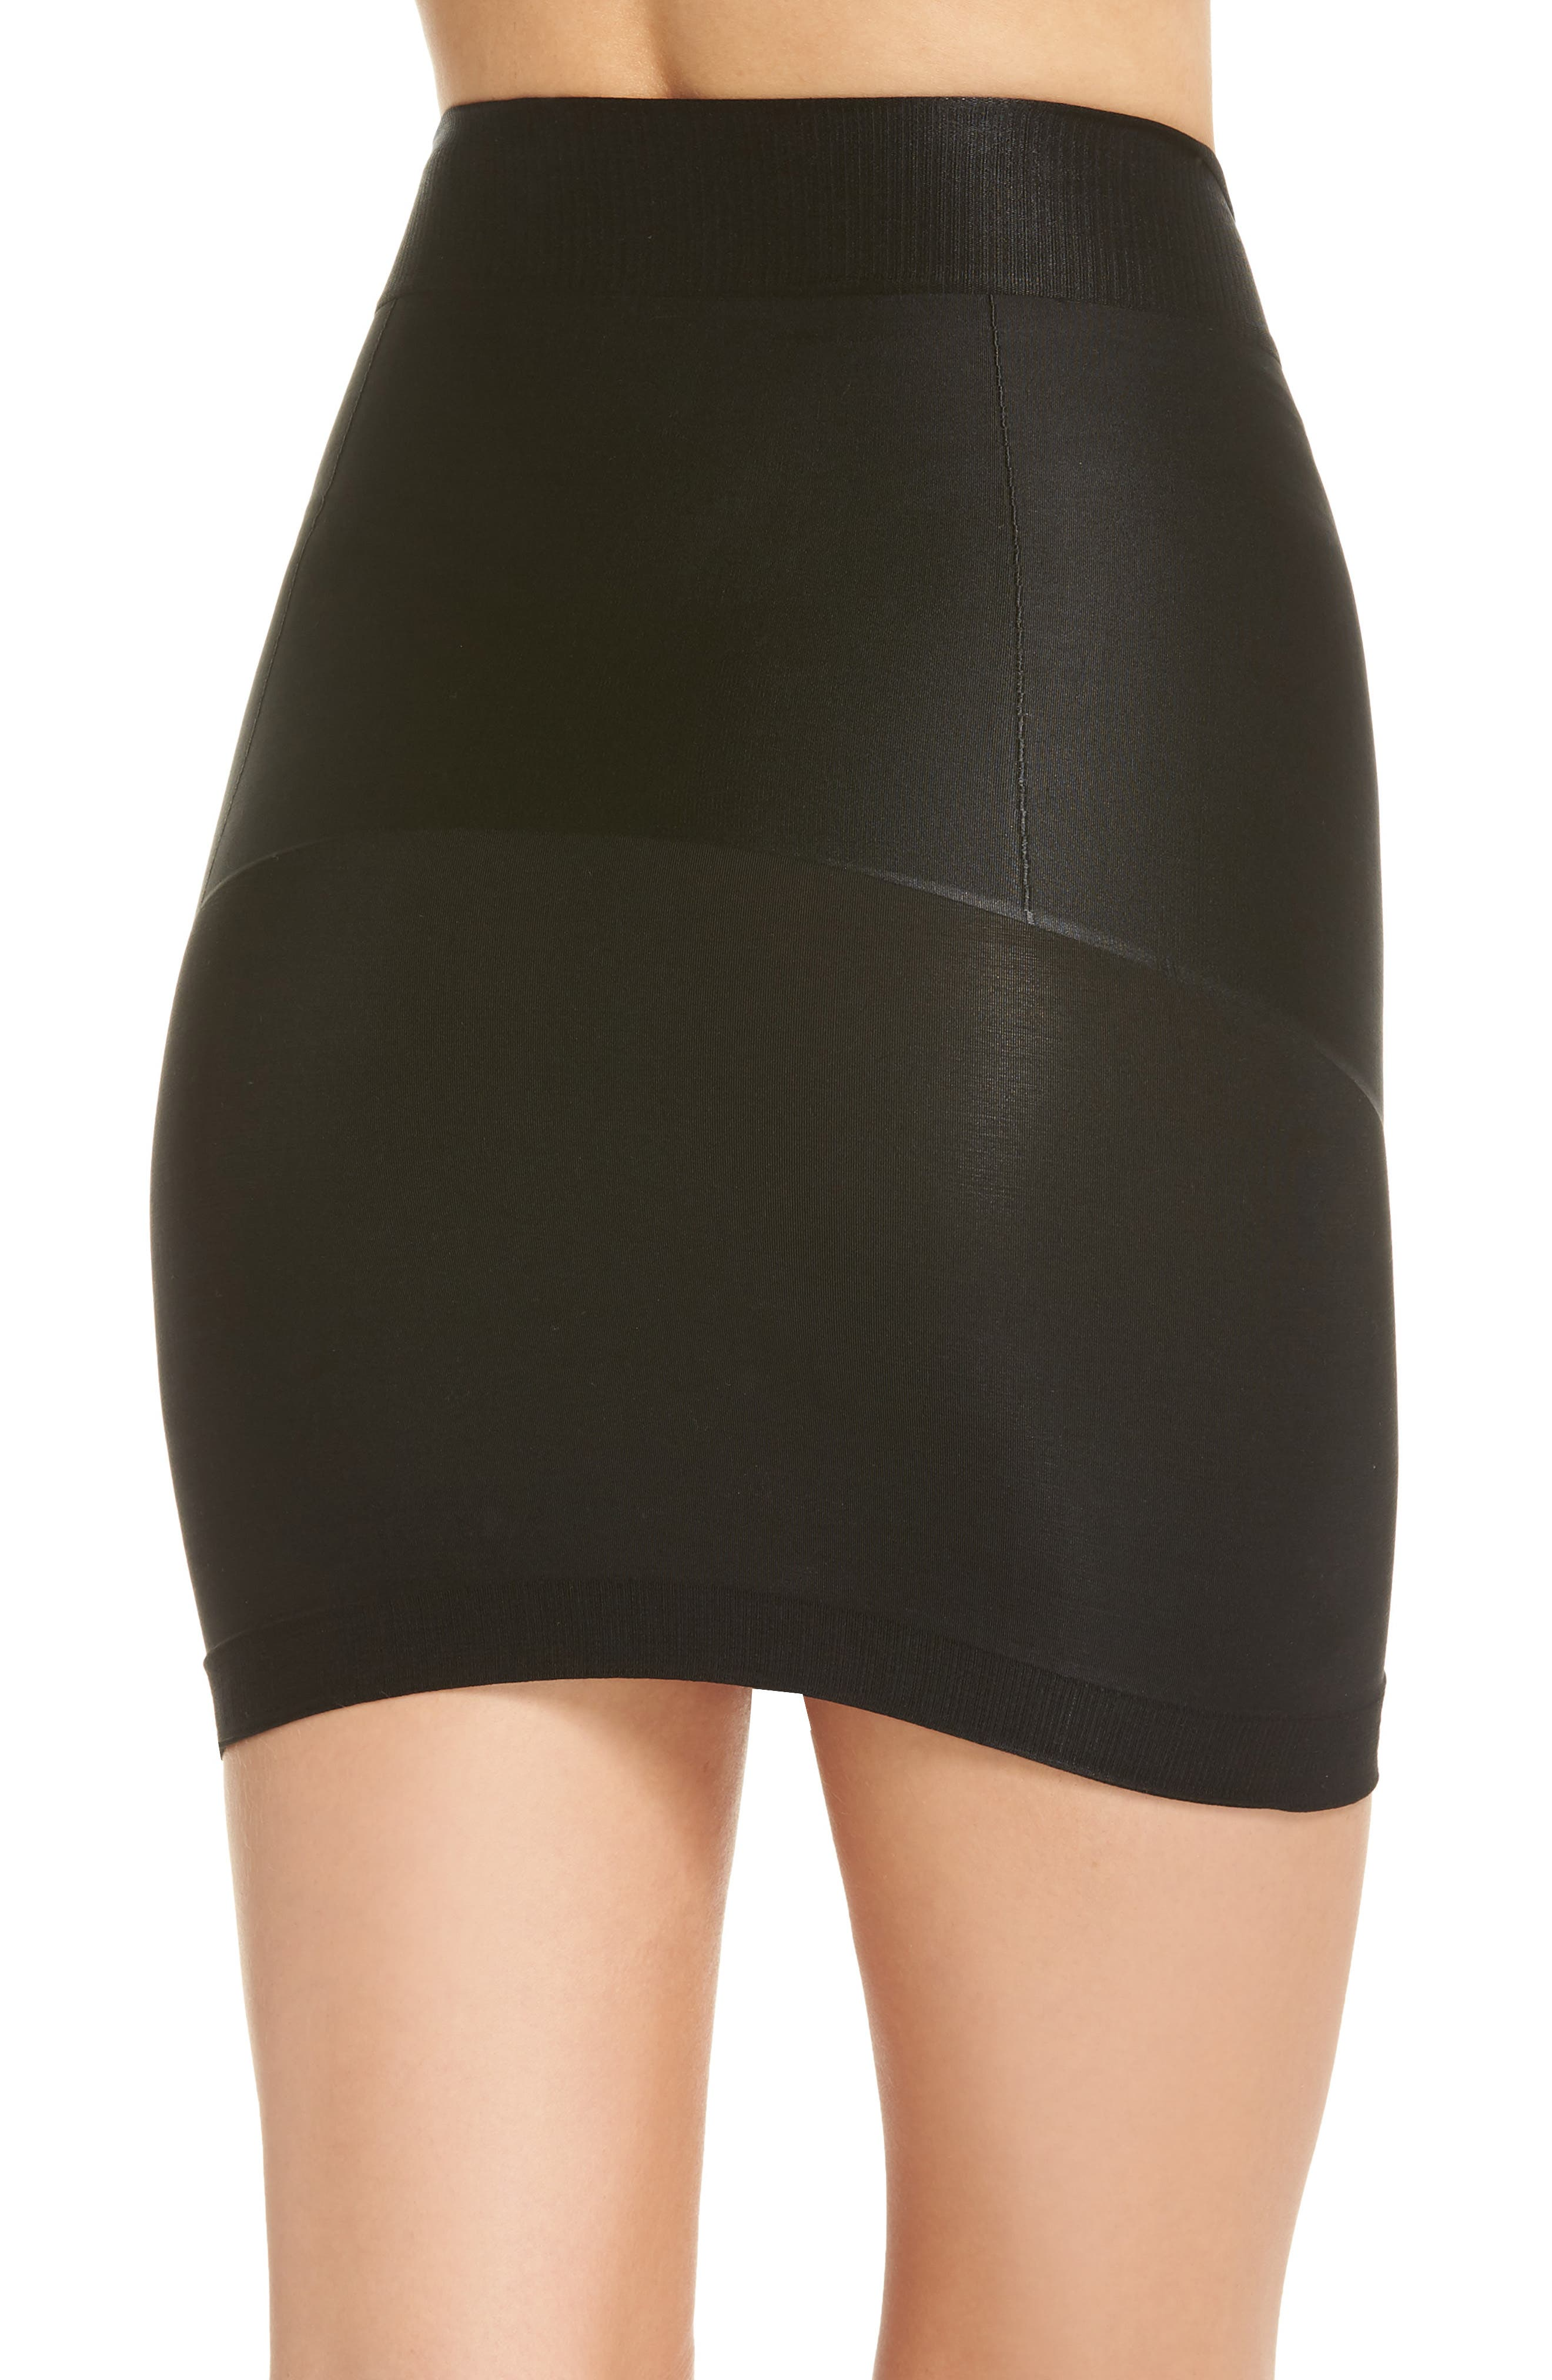 Nouveau Mid Waist Skirt with Built-In Thong,                             Alternate thumbnail 2, color,                             BLACK